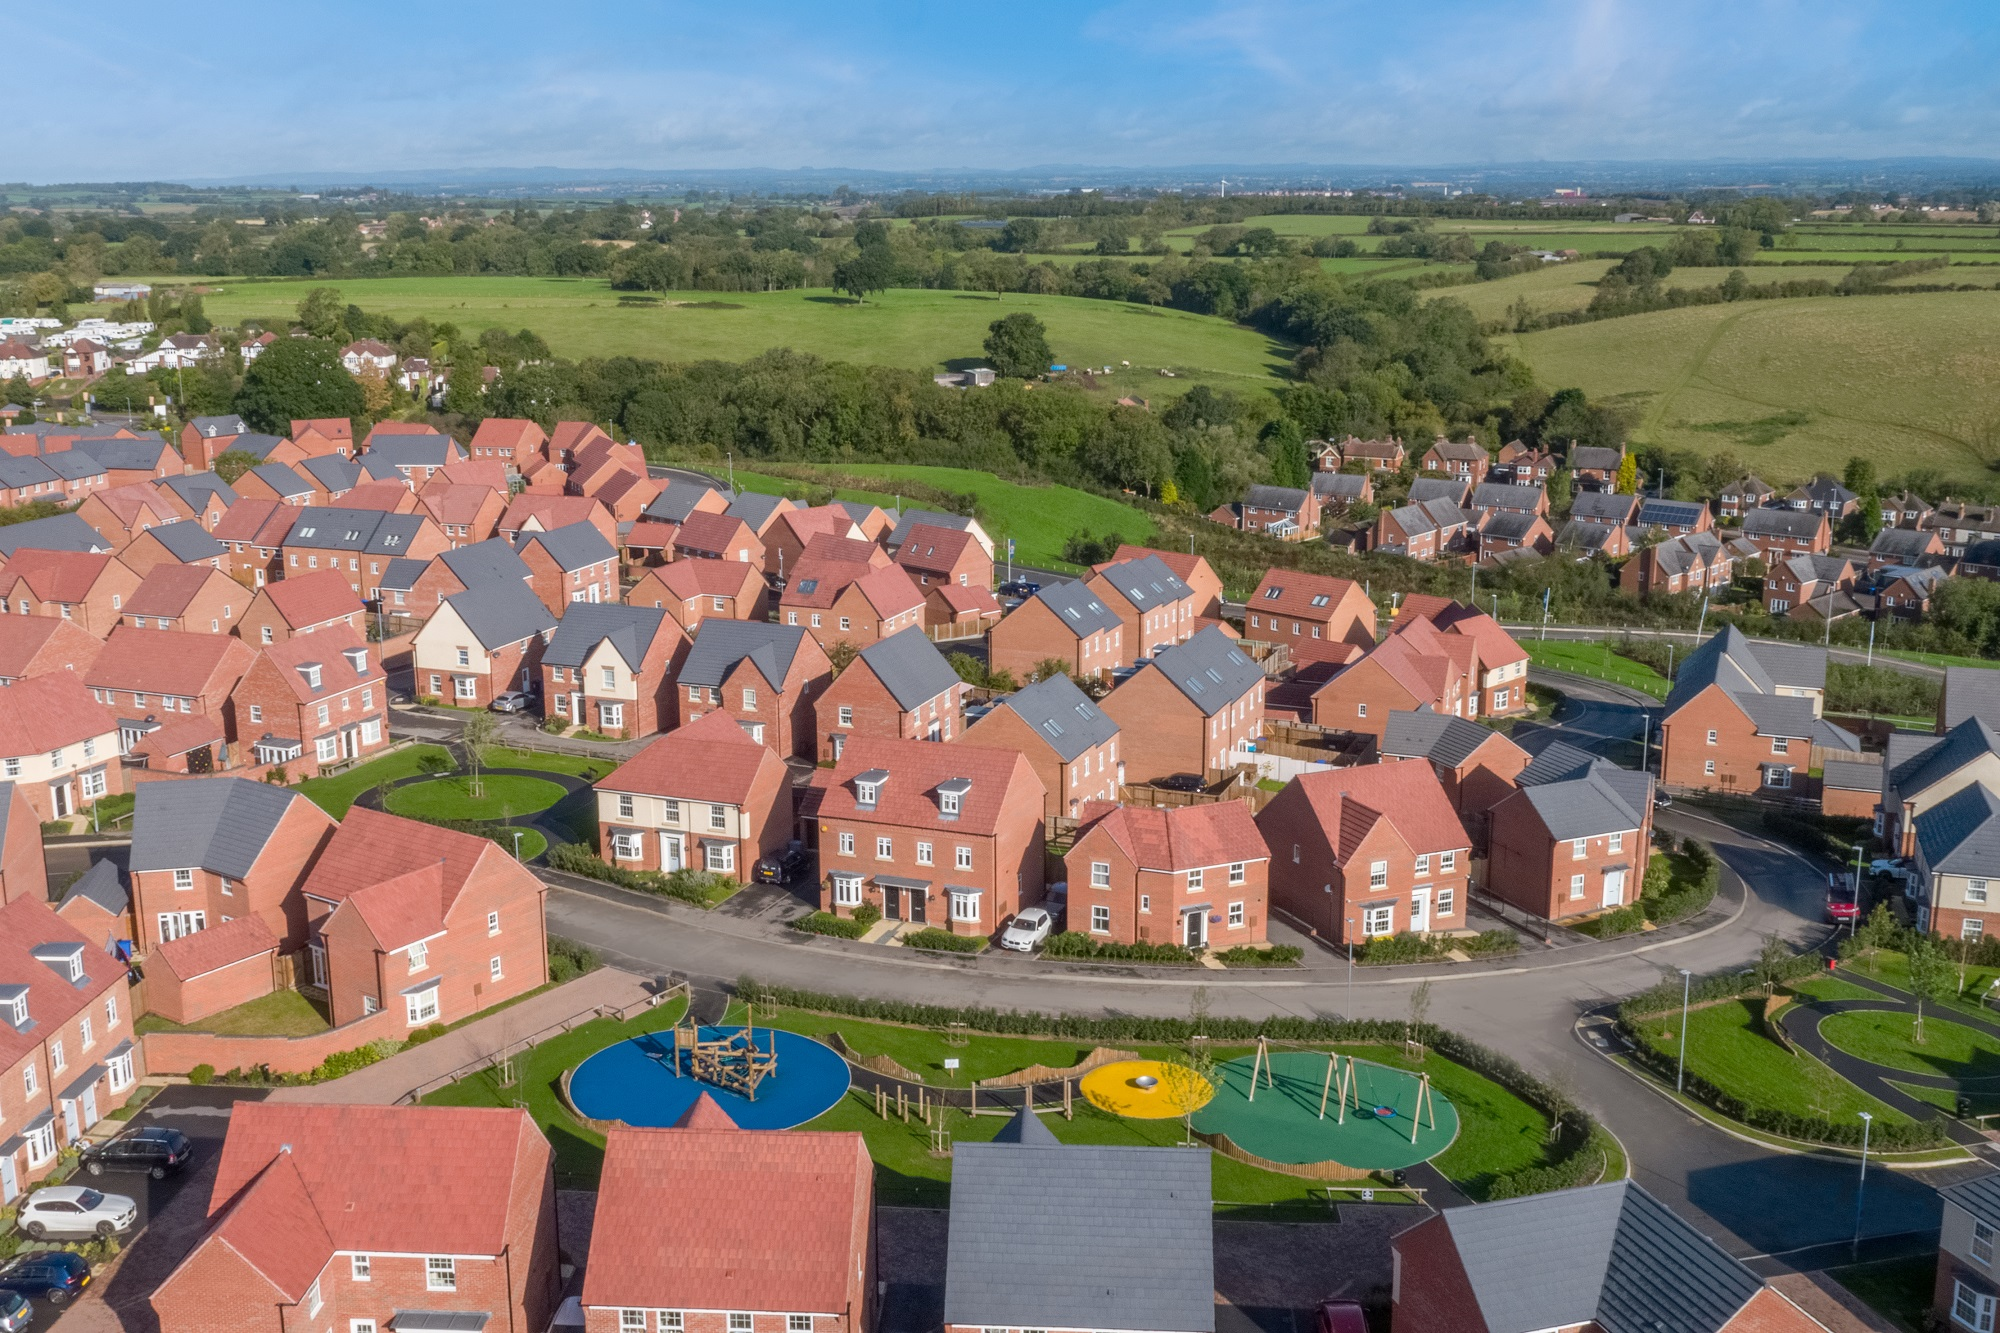 HOMEBUILDER LOOKS BACK ON £8.5M COMMITMENT TO DERBYSHIRE AS COMMUNITIES COMPLETE